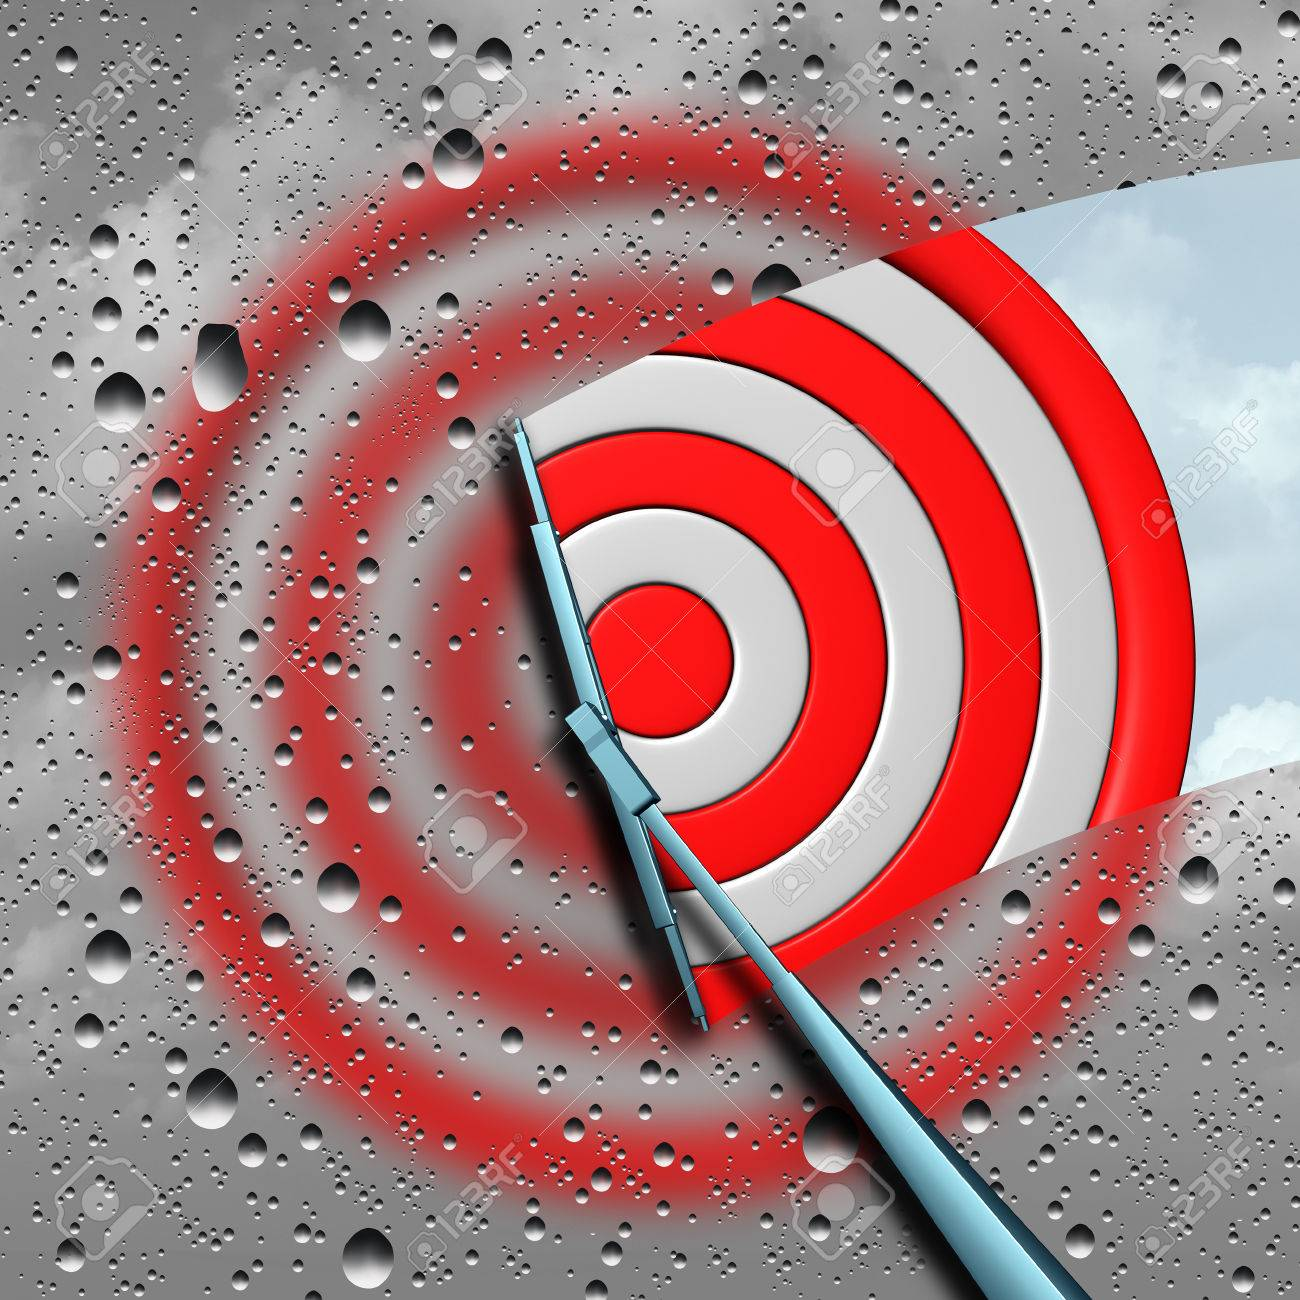 Concept of target as a blurry wet bulls eye dart target board being cleaned by a wiper as a business metaphor for clear focus or focused aim icon as a 3D illustration. Stock Photo - 64818603